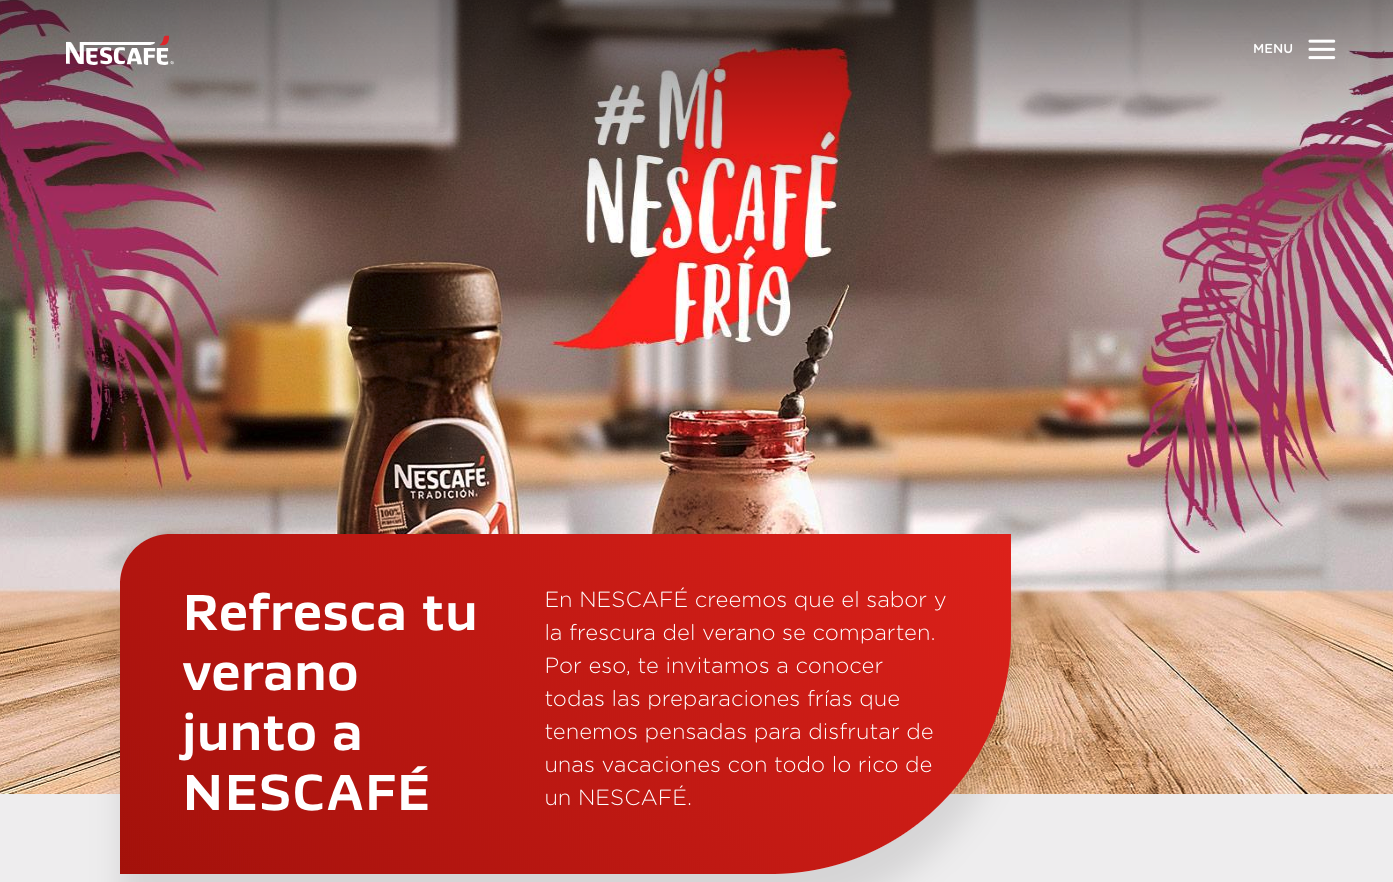 Nescafé's Chilean home page differs from other countries like the U.S.